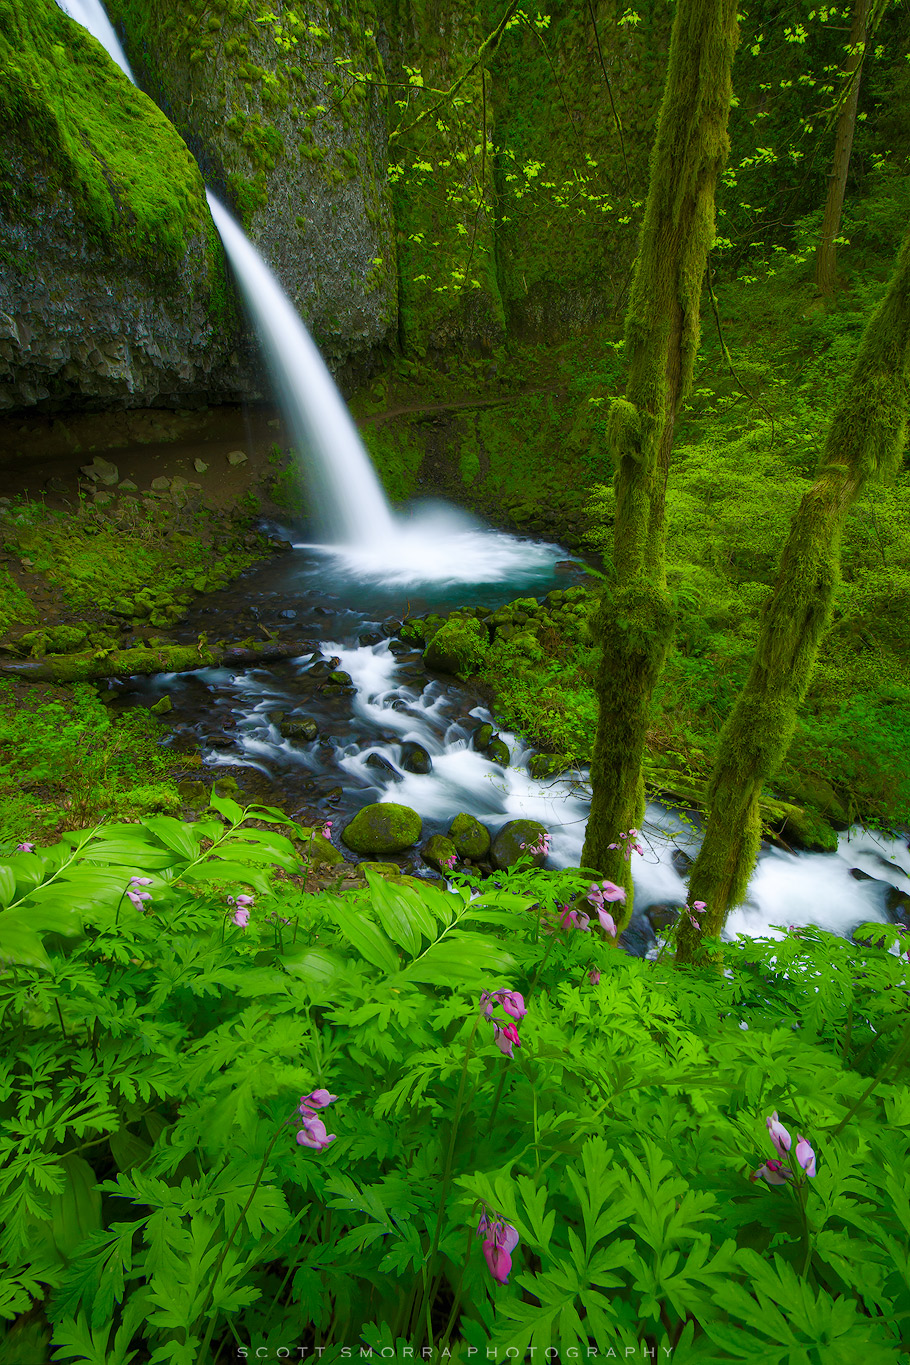 Oregon, Columbia River, Gorge, Ponytail Falls, wildflowers, bleeding hearts, waterfall, green, spring, photo